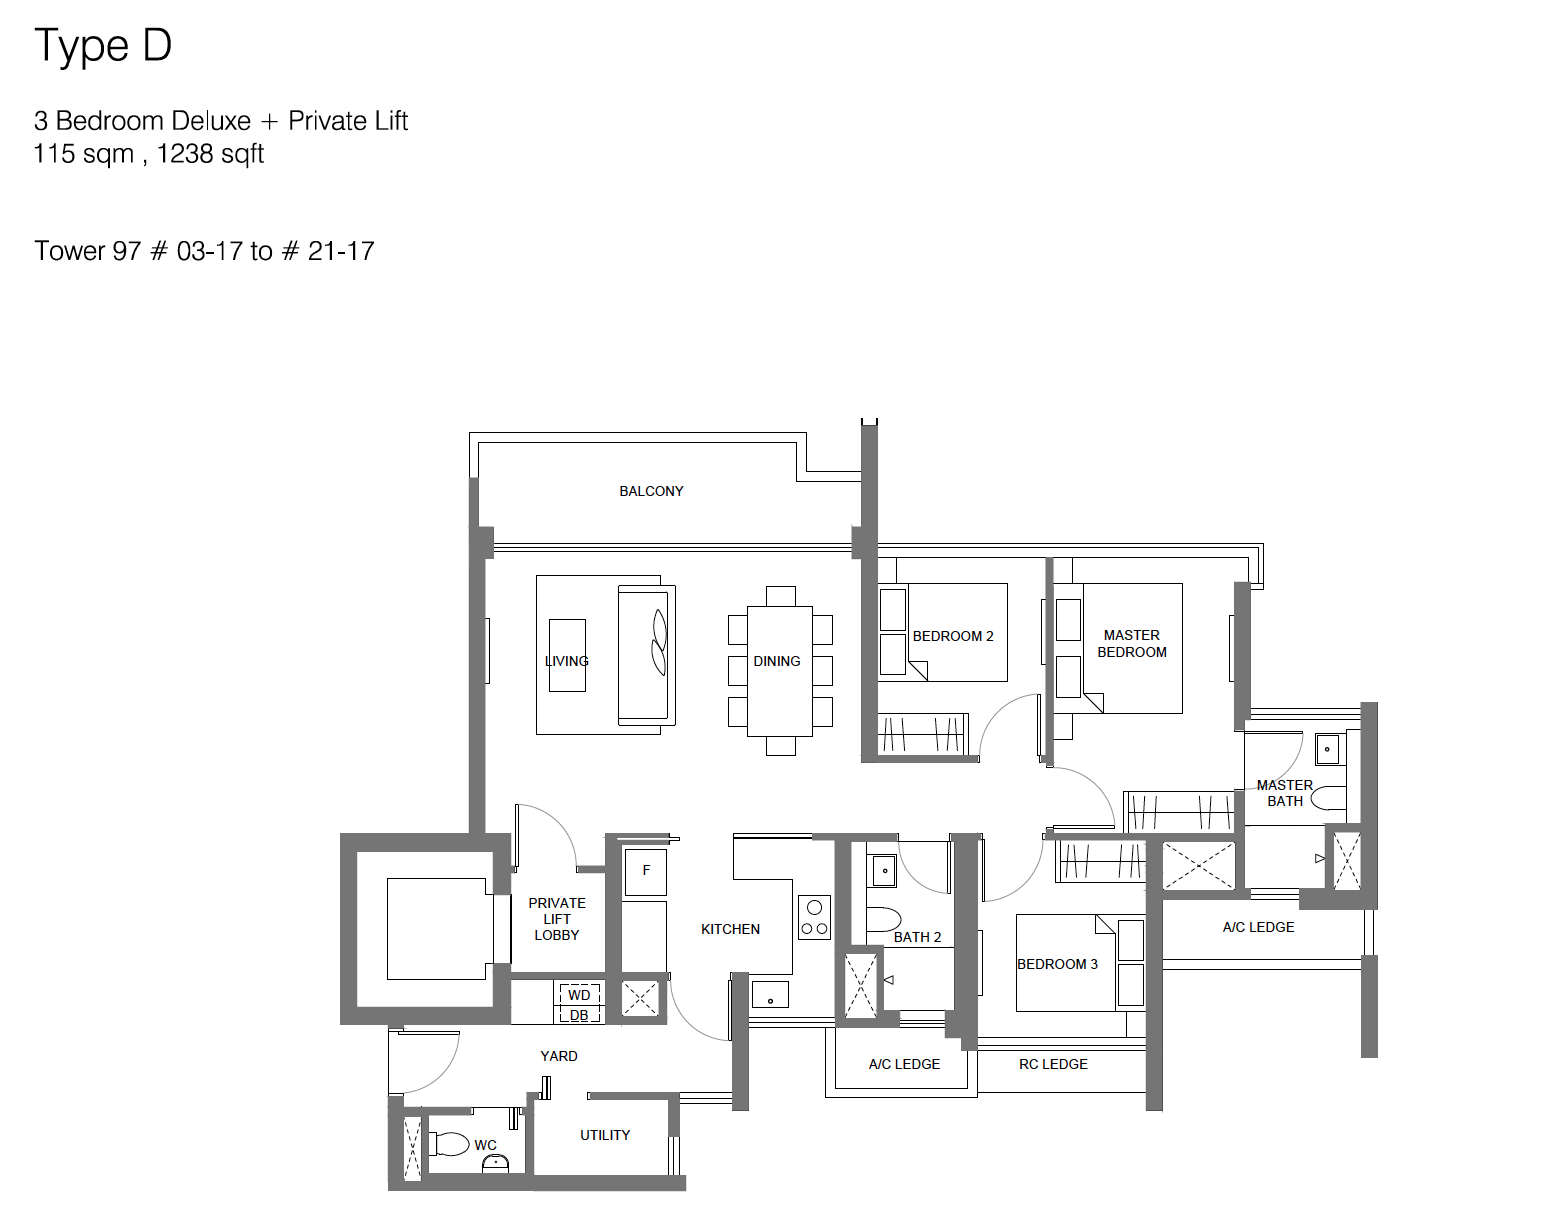 Principal Garden floor plan - 3 bedroom deluxe + private lift